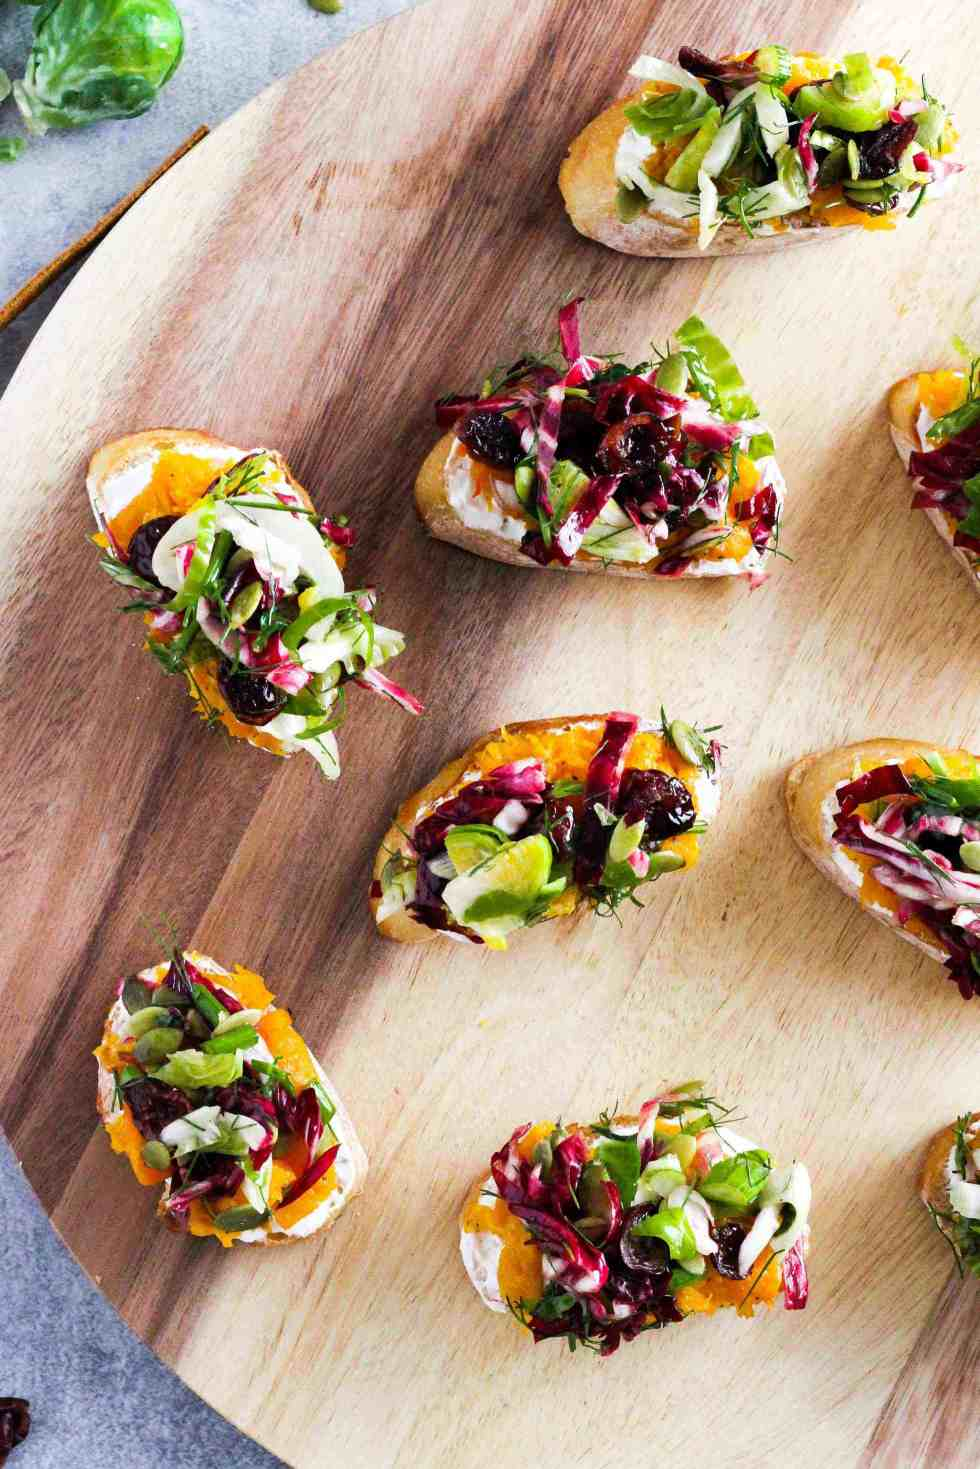 Fall produce mini toasts with squash and brussels sprouts.